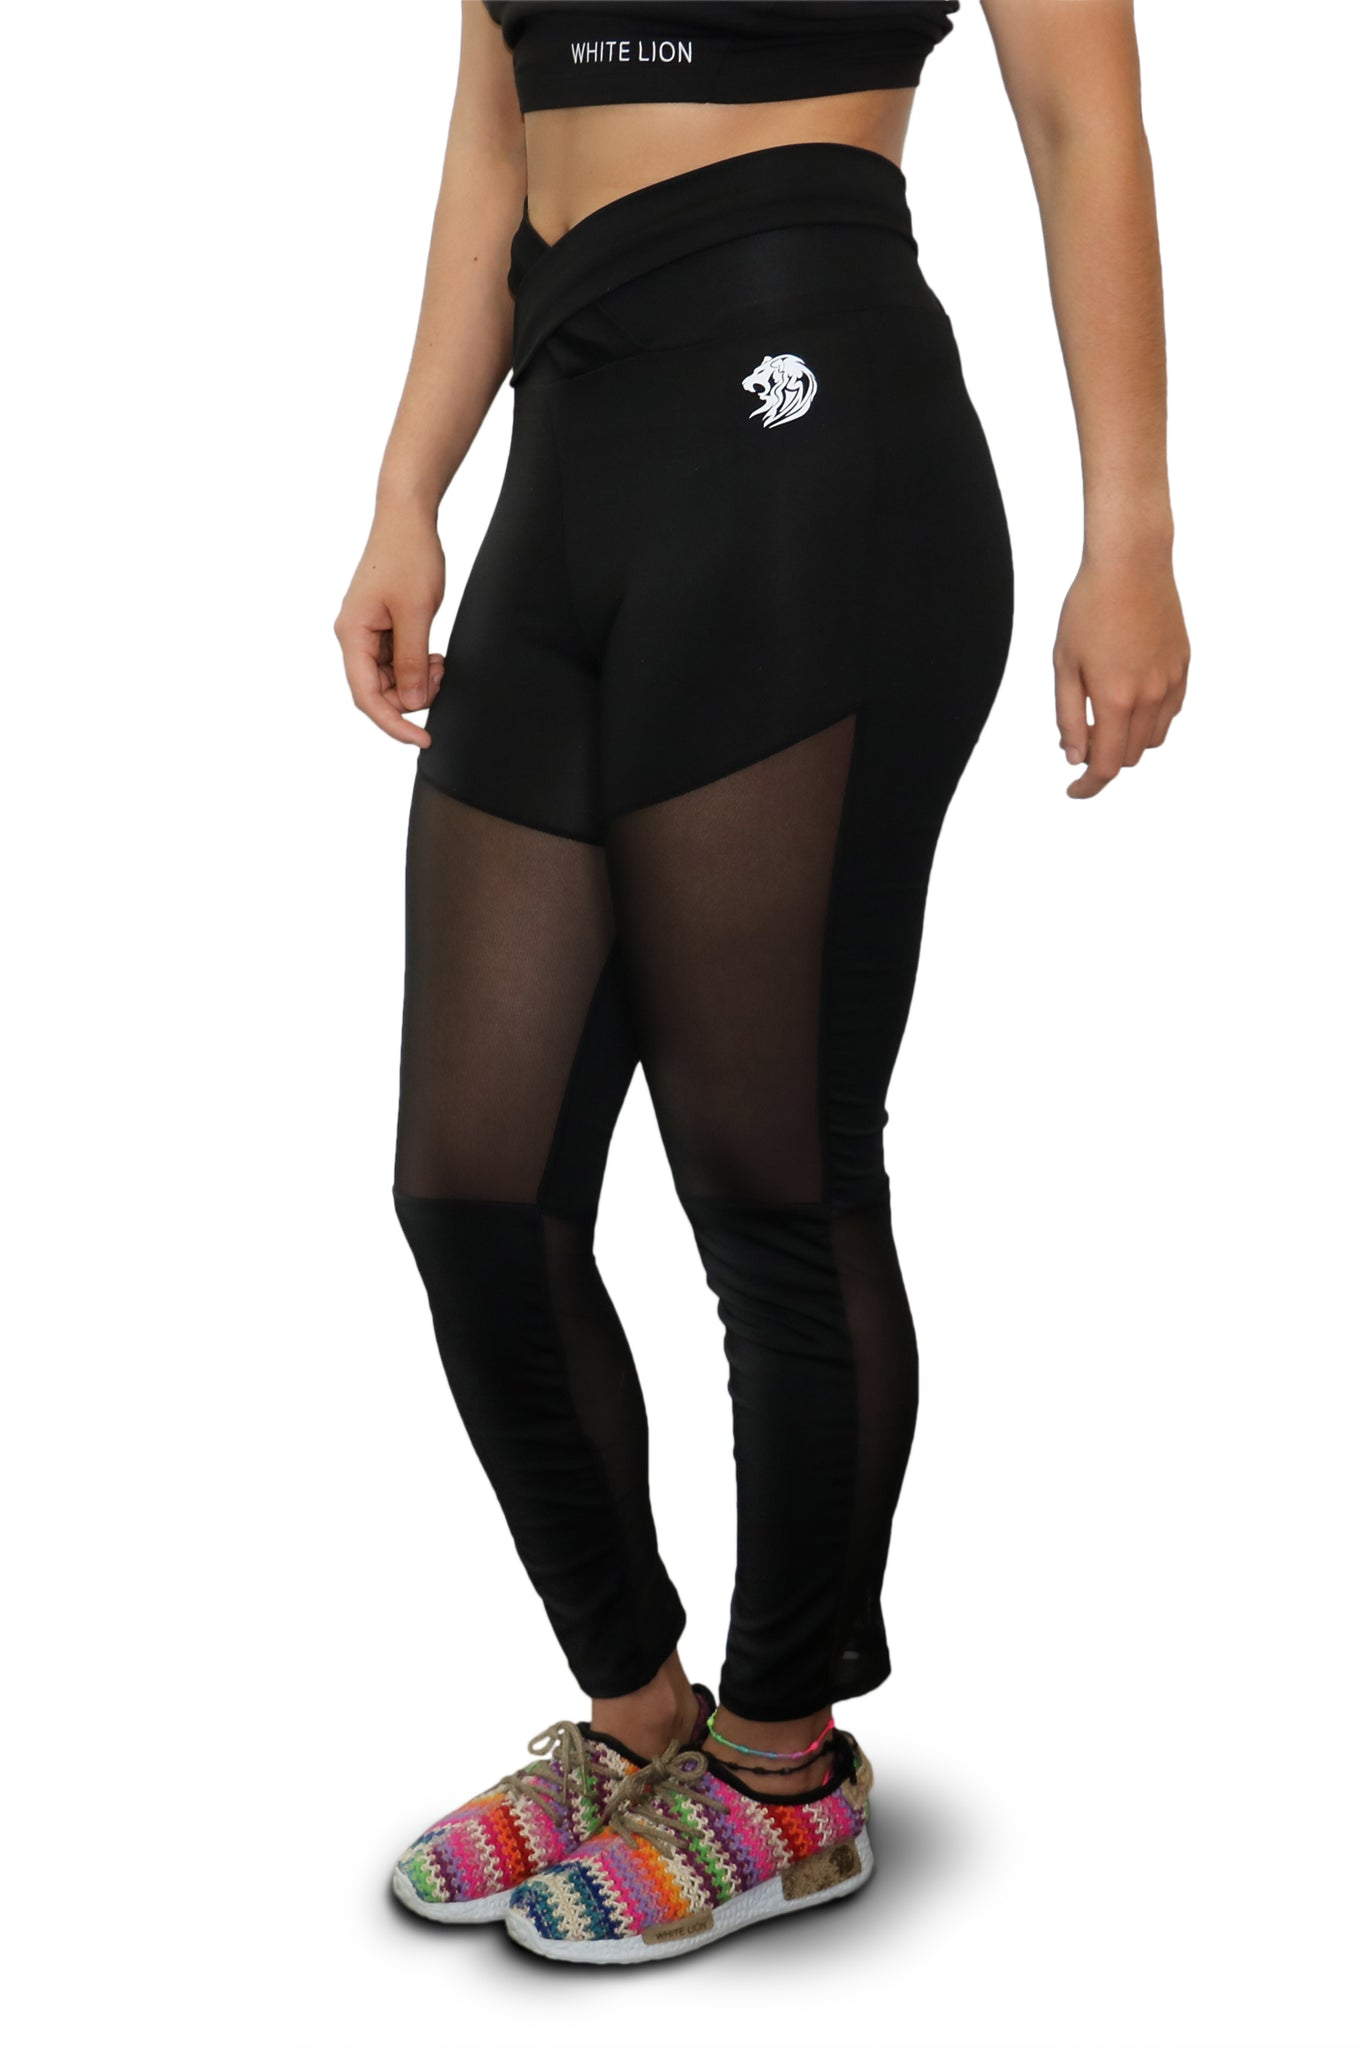 Kairos Leggings - White Lion Apparel